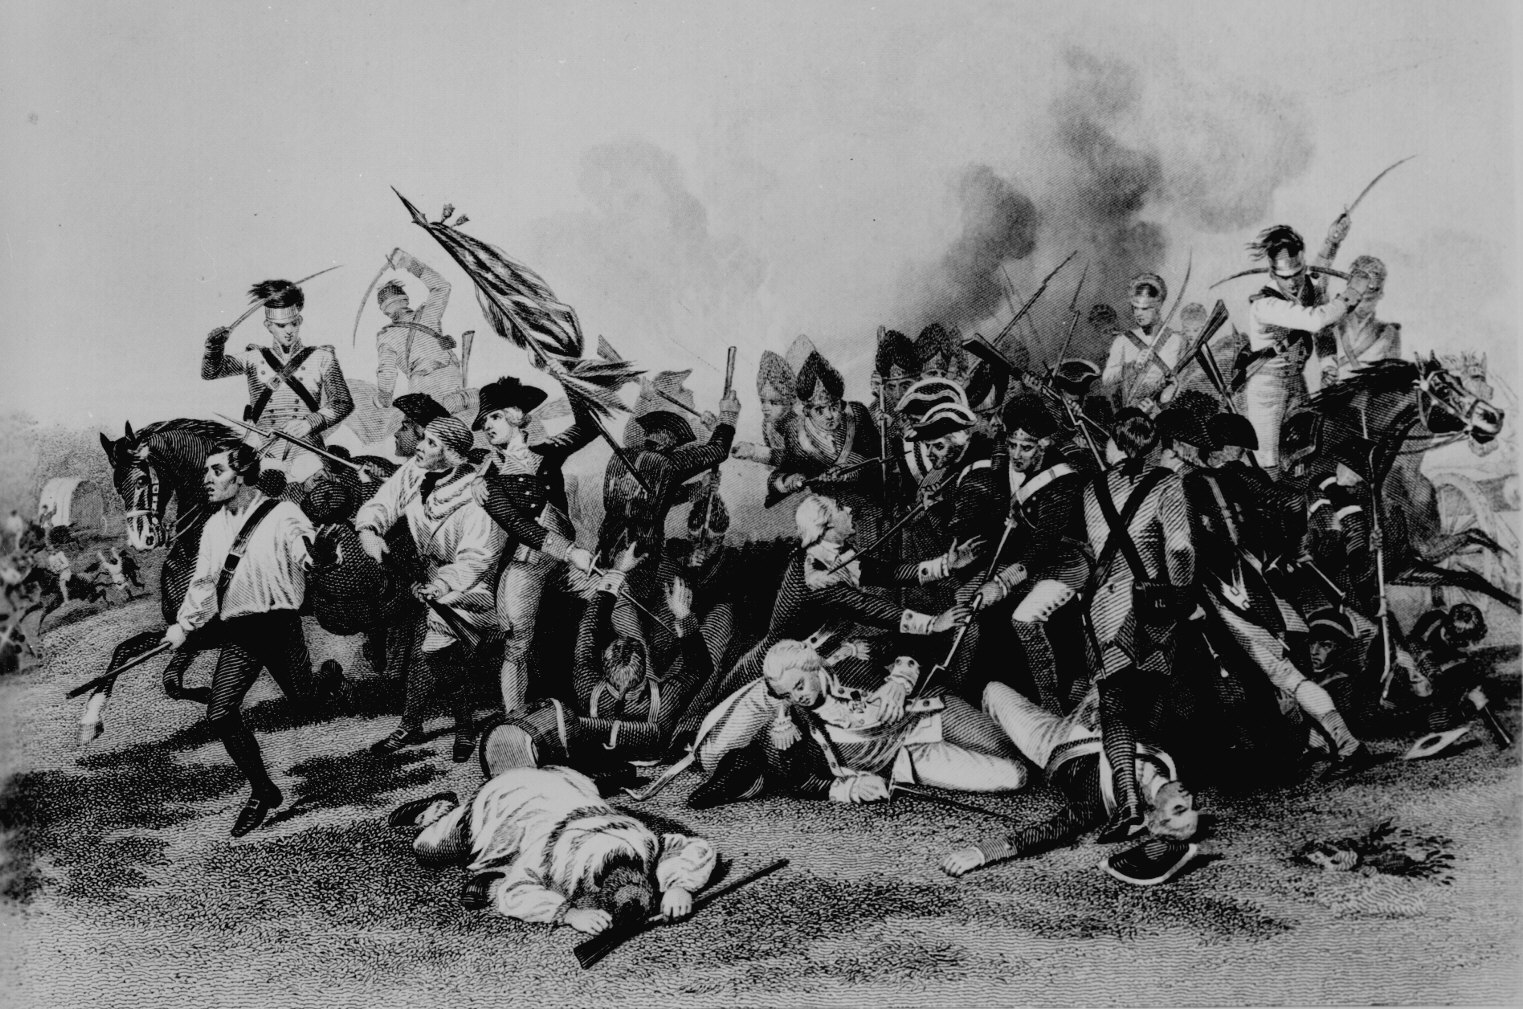 the background of the revolutionary war in 1775 Campaign background in the spring of 1775, the revolutionary war began with the battle of lexington and concordthe conflict was then at a standstill, with the british army surrounded by colonial militia in the siege of boston.